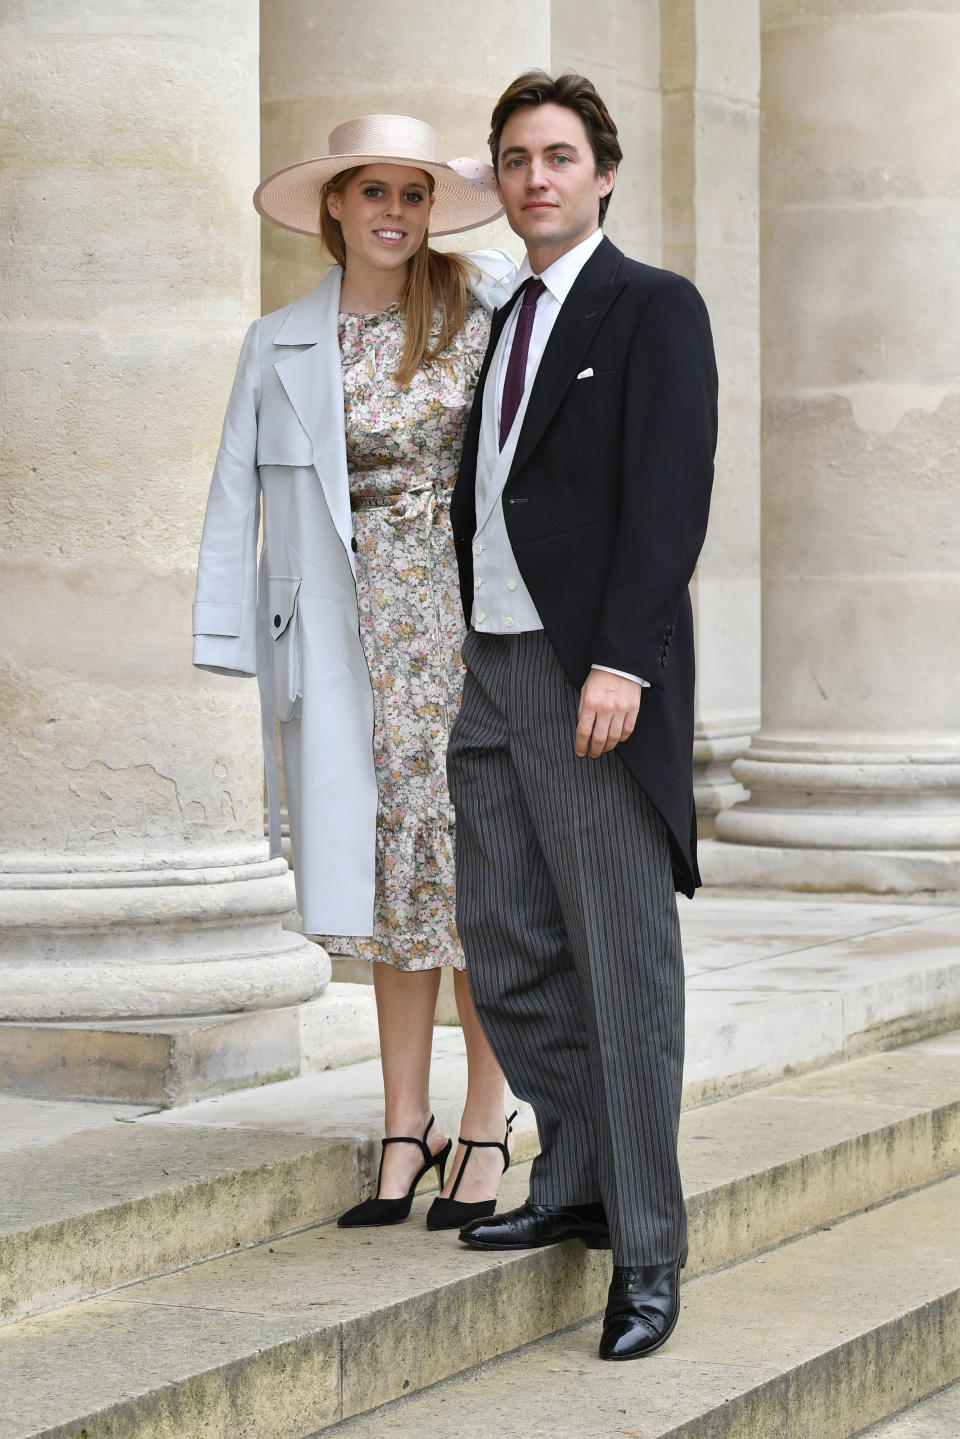 Princess Beatrice and Edoardo Mapelli Mozzi attend the wedding of Prince Jean-Christophe Napoleon and Olympia Von Arco-Zinneberg on 19 October 2019 in Paris. (Getty Images)